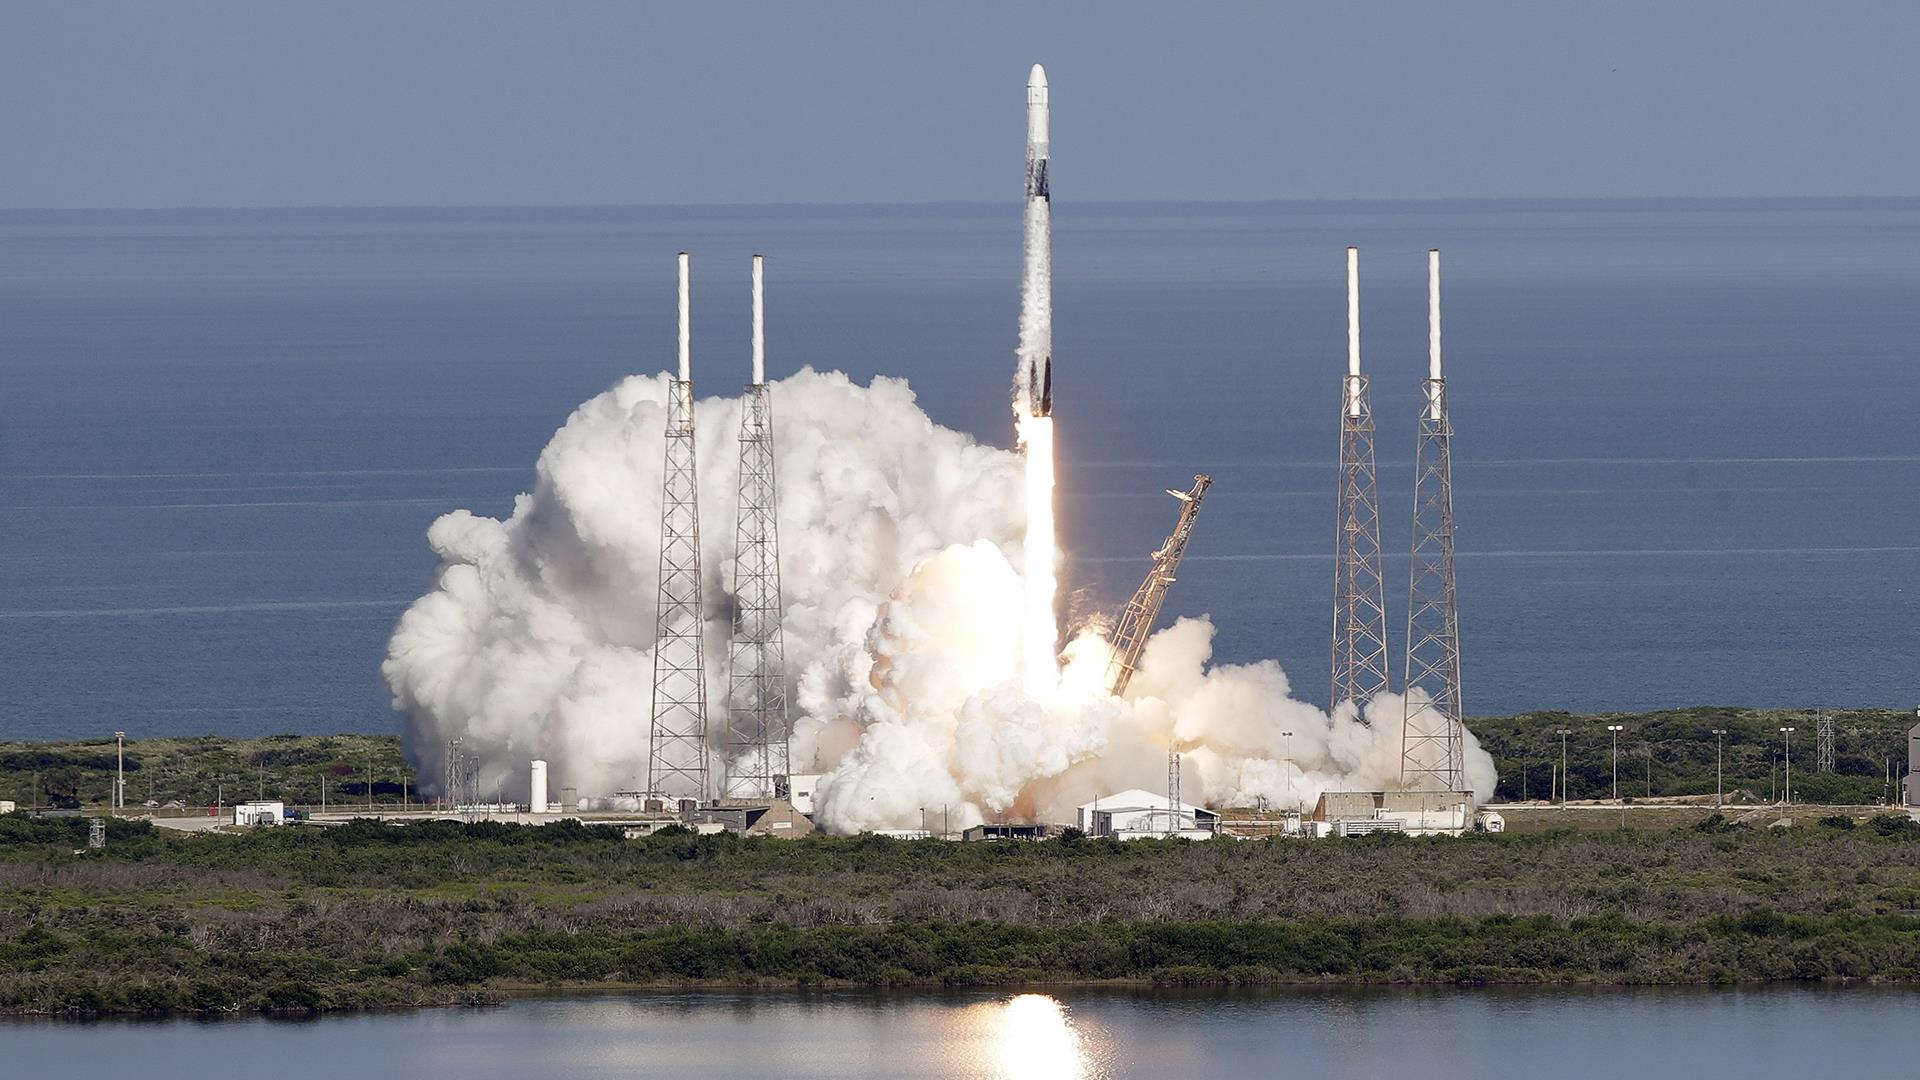 spacex launches rocket - HD1920×1080